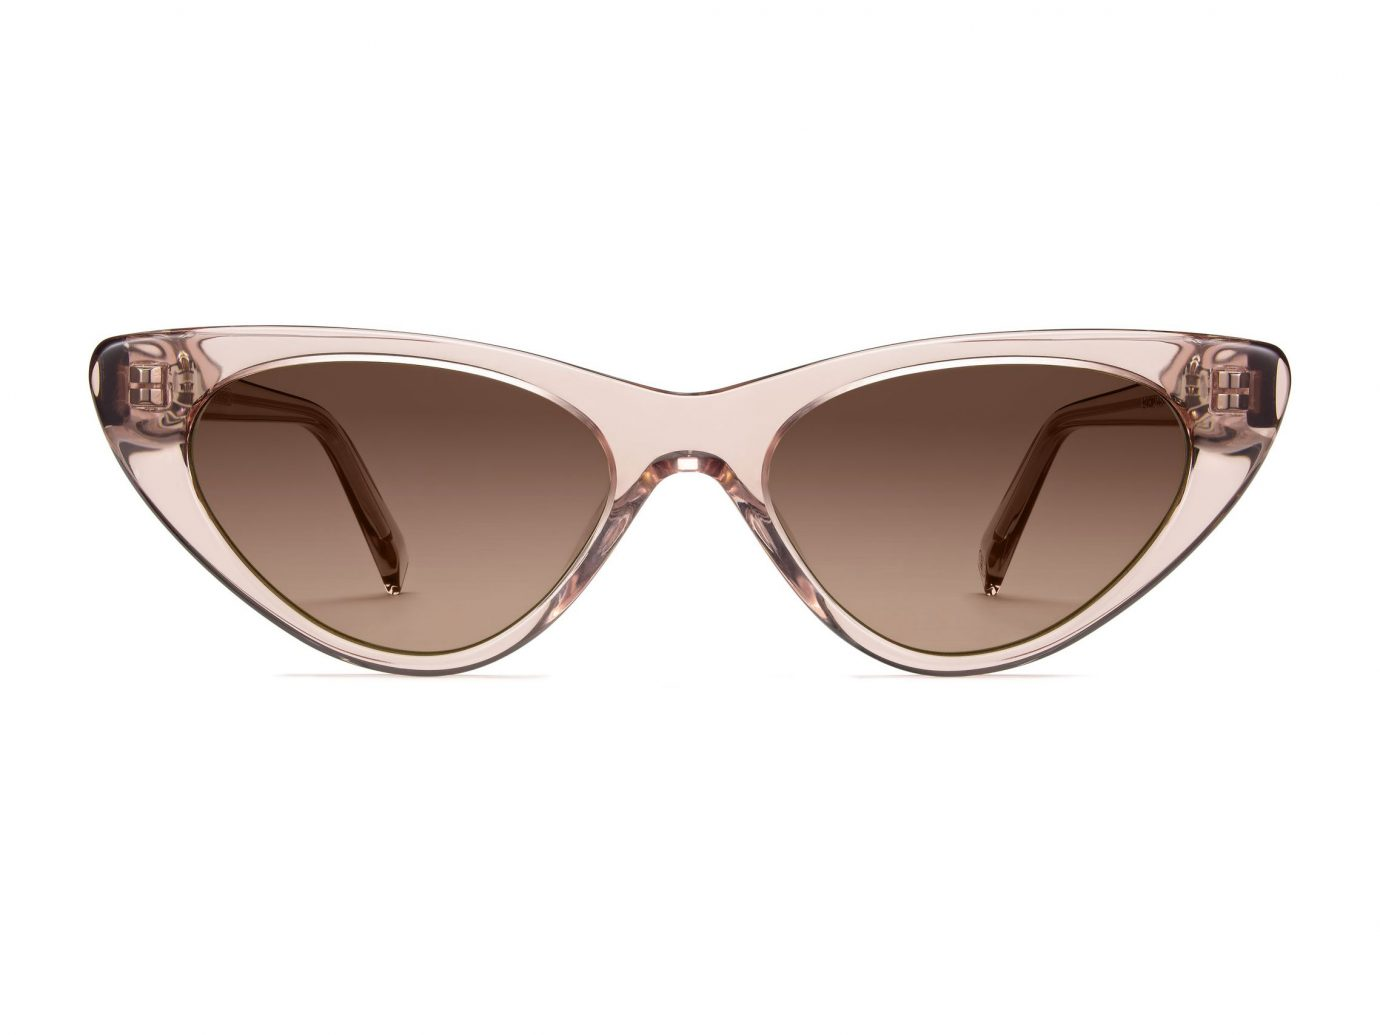 Warby Parker Astrid Sunglasses